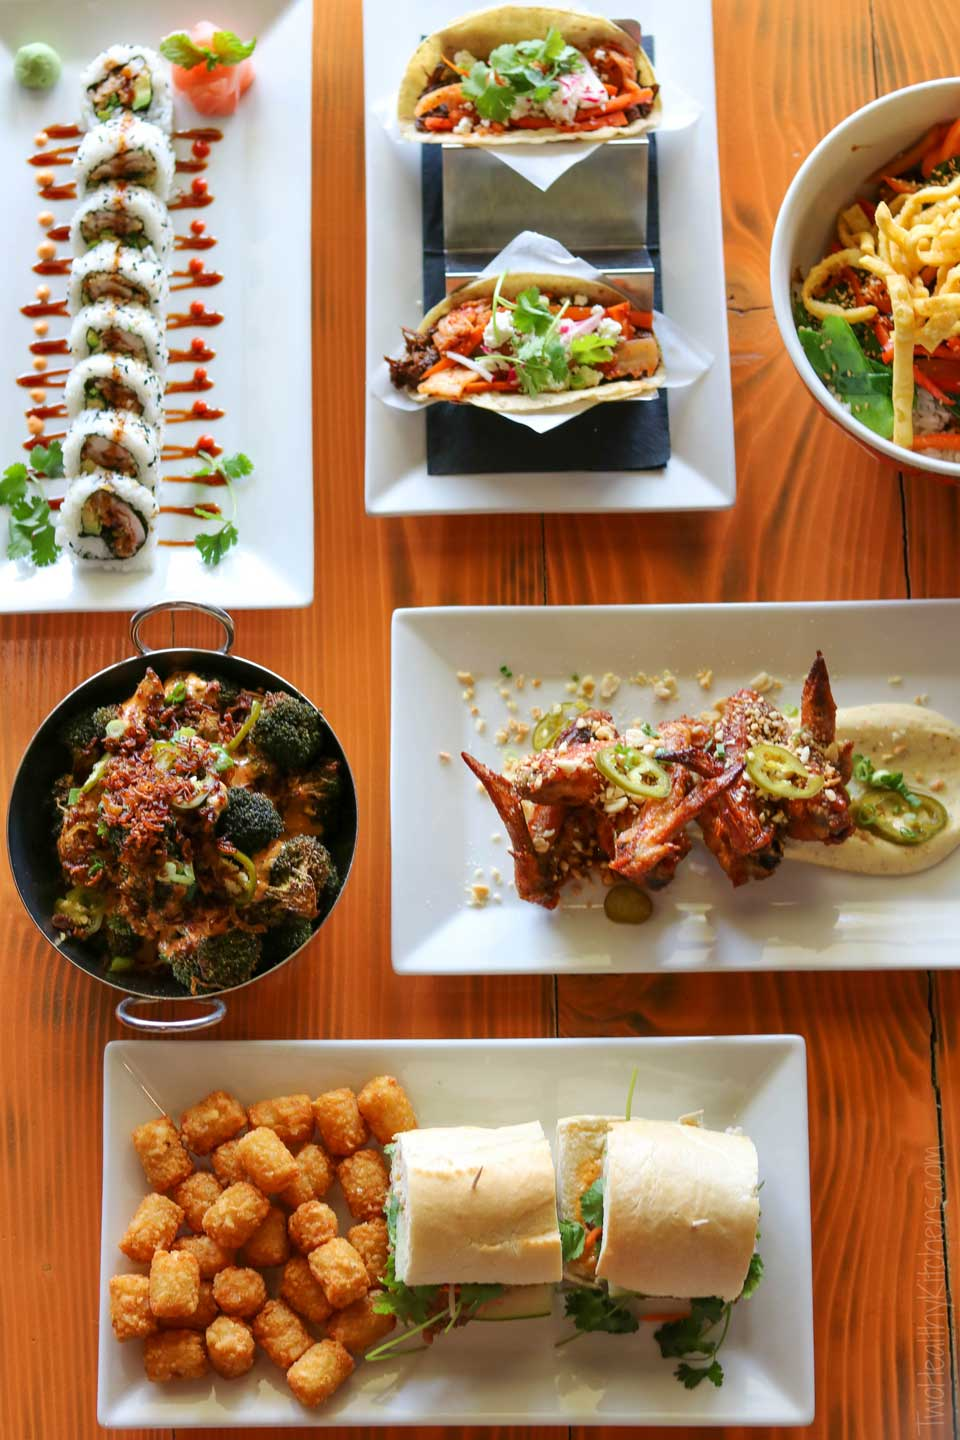 At Buddha'Licious, Chef Bryant artfully combines Southeast Asian cuisine with the familiar flavors of the American South.